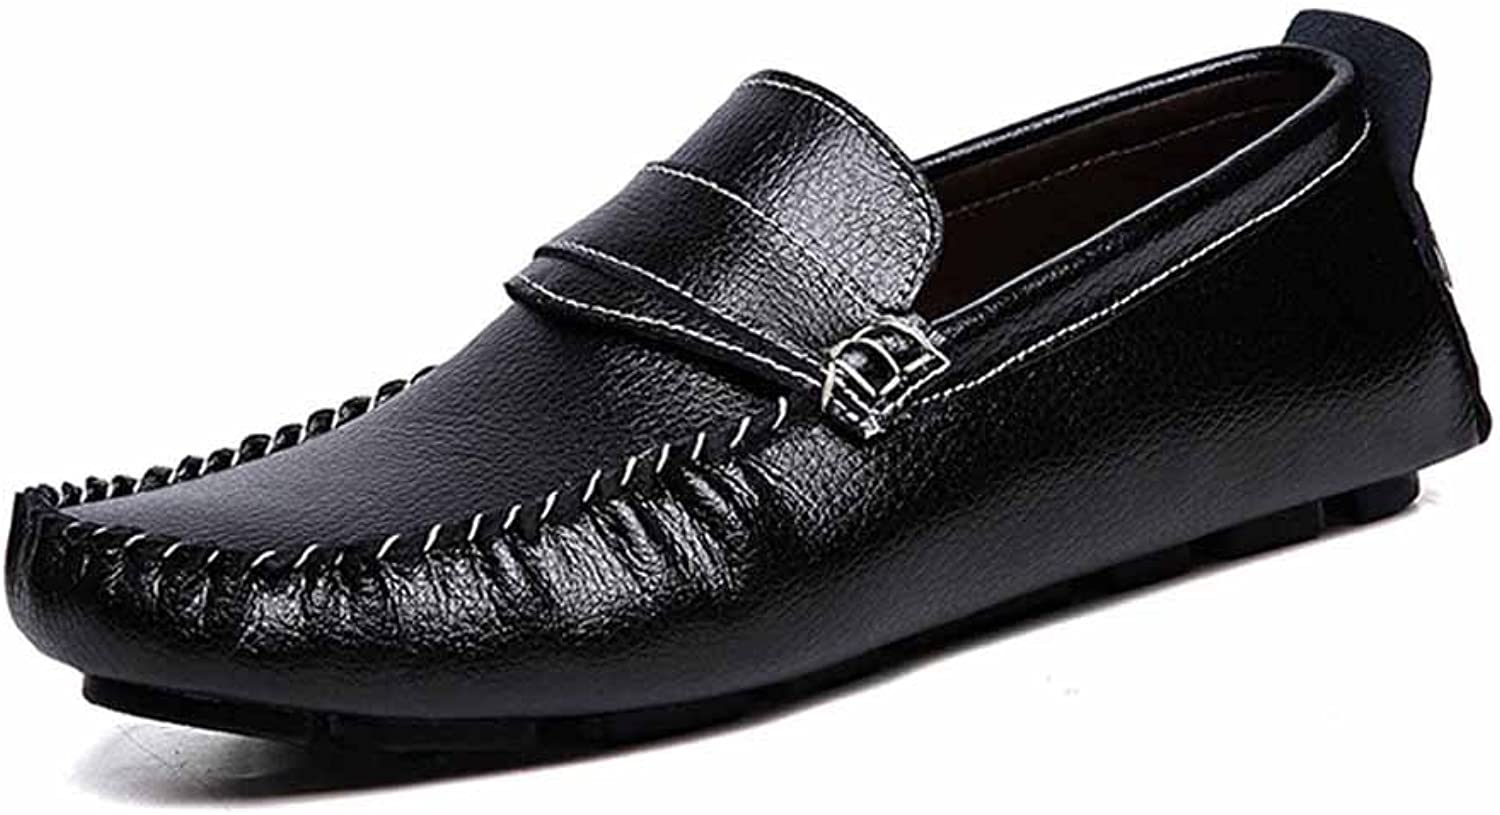 GLSHI Men Casual Driving shoes Comfort Loafer Low Top Breathable Flats shoes Black